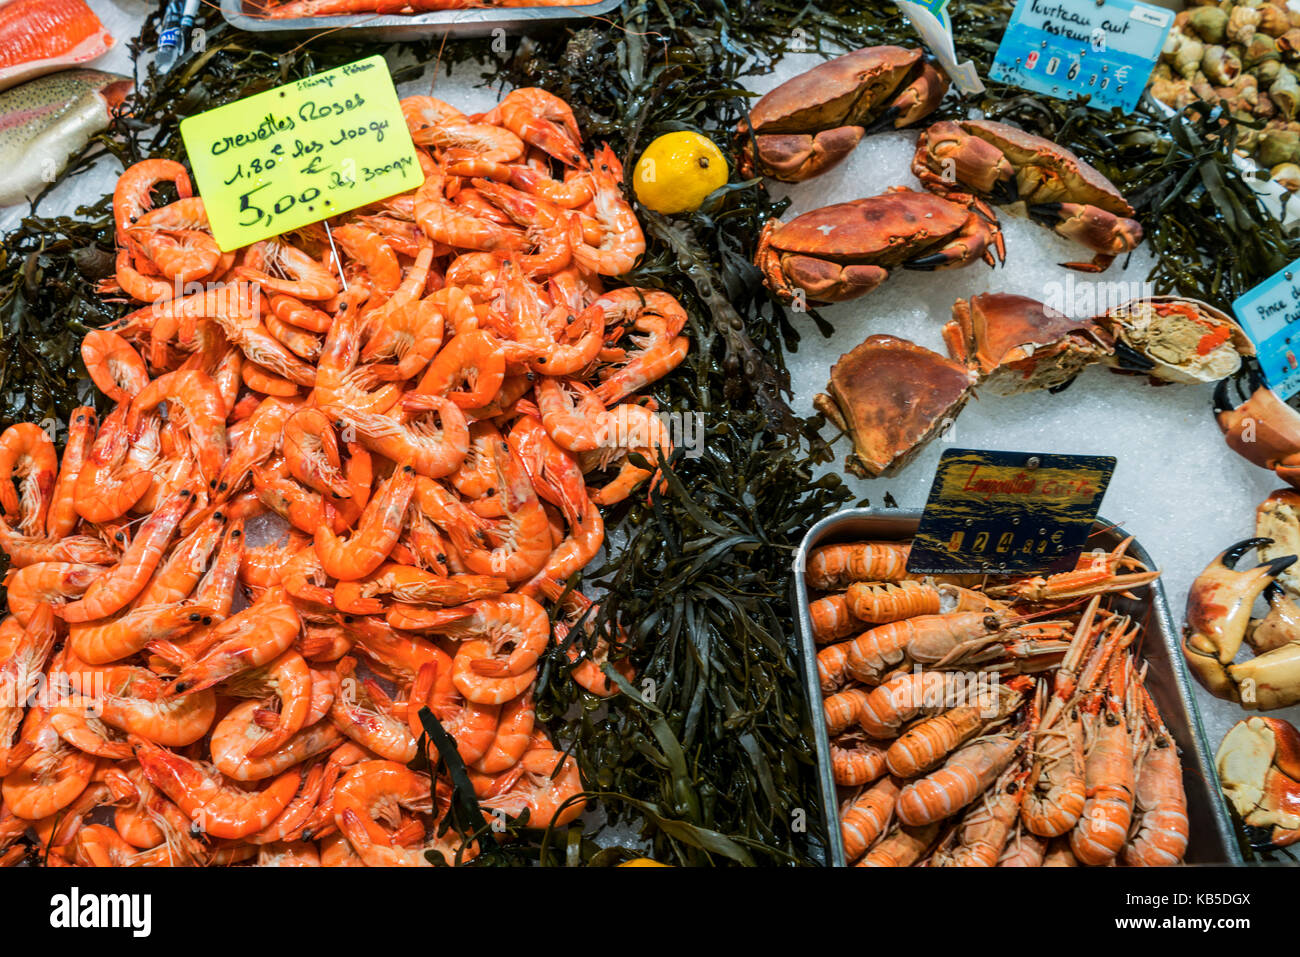 crabs, shrimps, fish, Marche de Capucins, Bordeaux, France - Stock Image